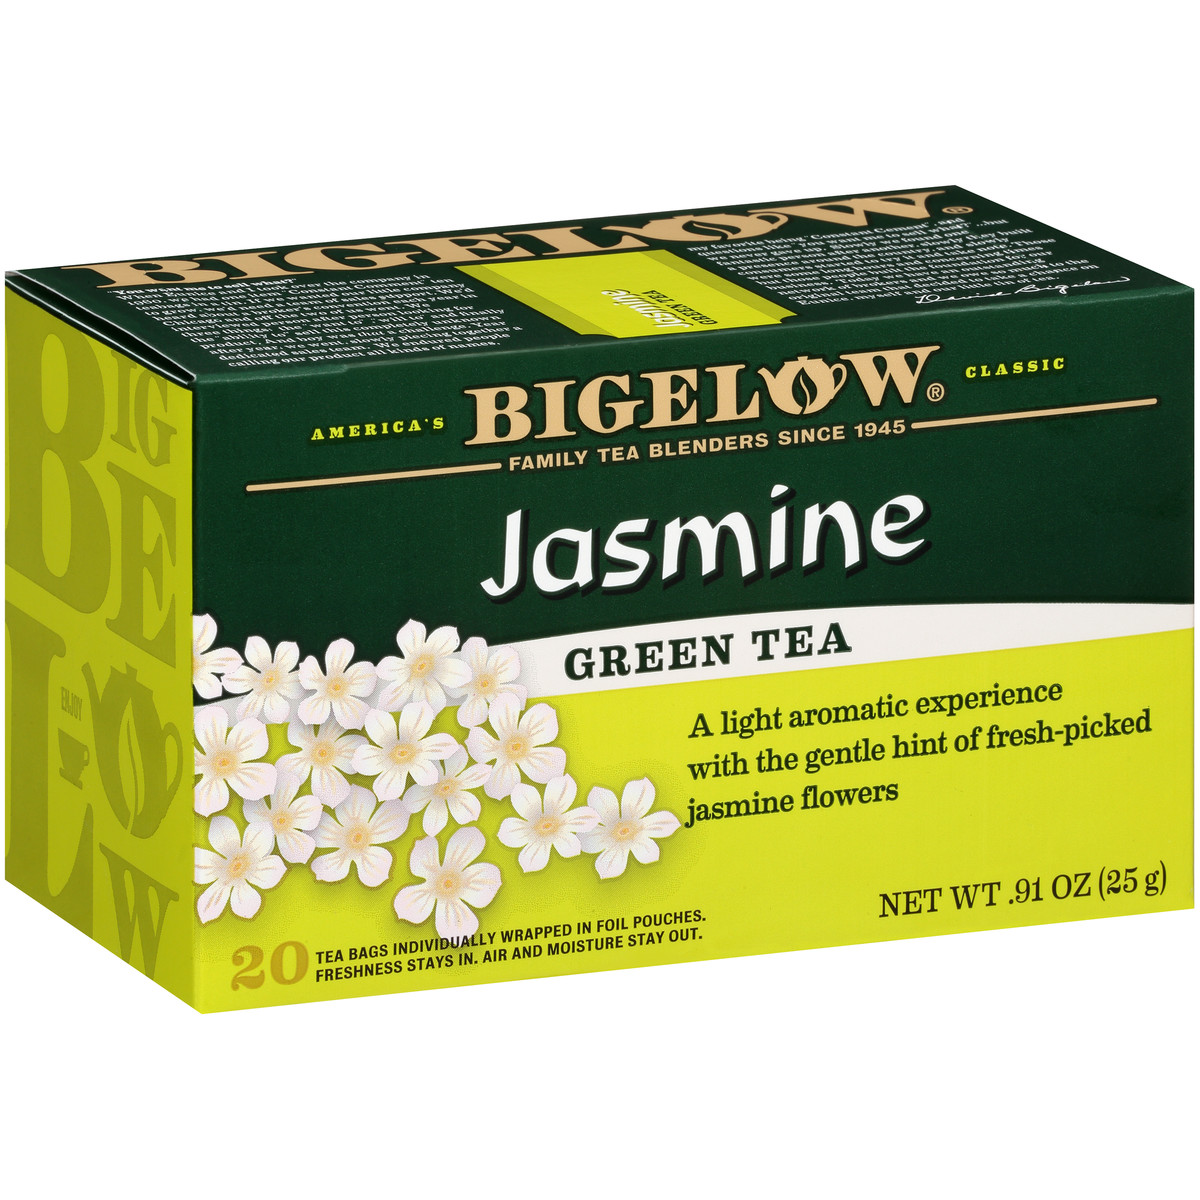 Jasmine Green Tea Case Of 6 Boxes Total Of 120 Teabags